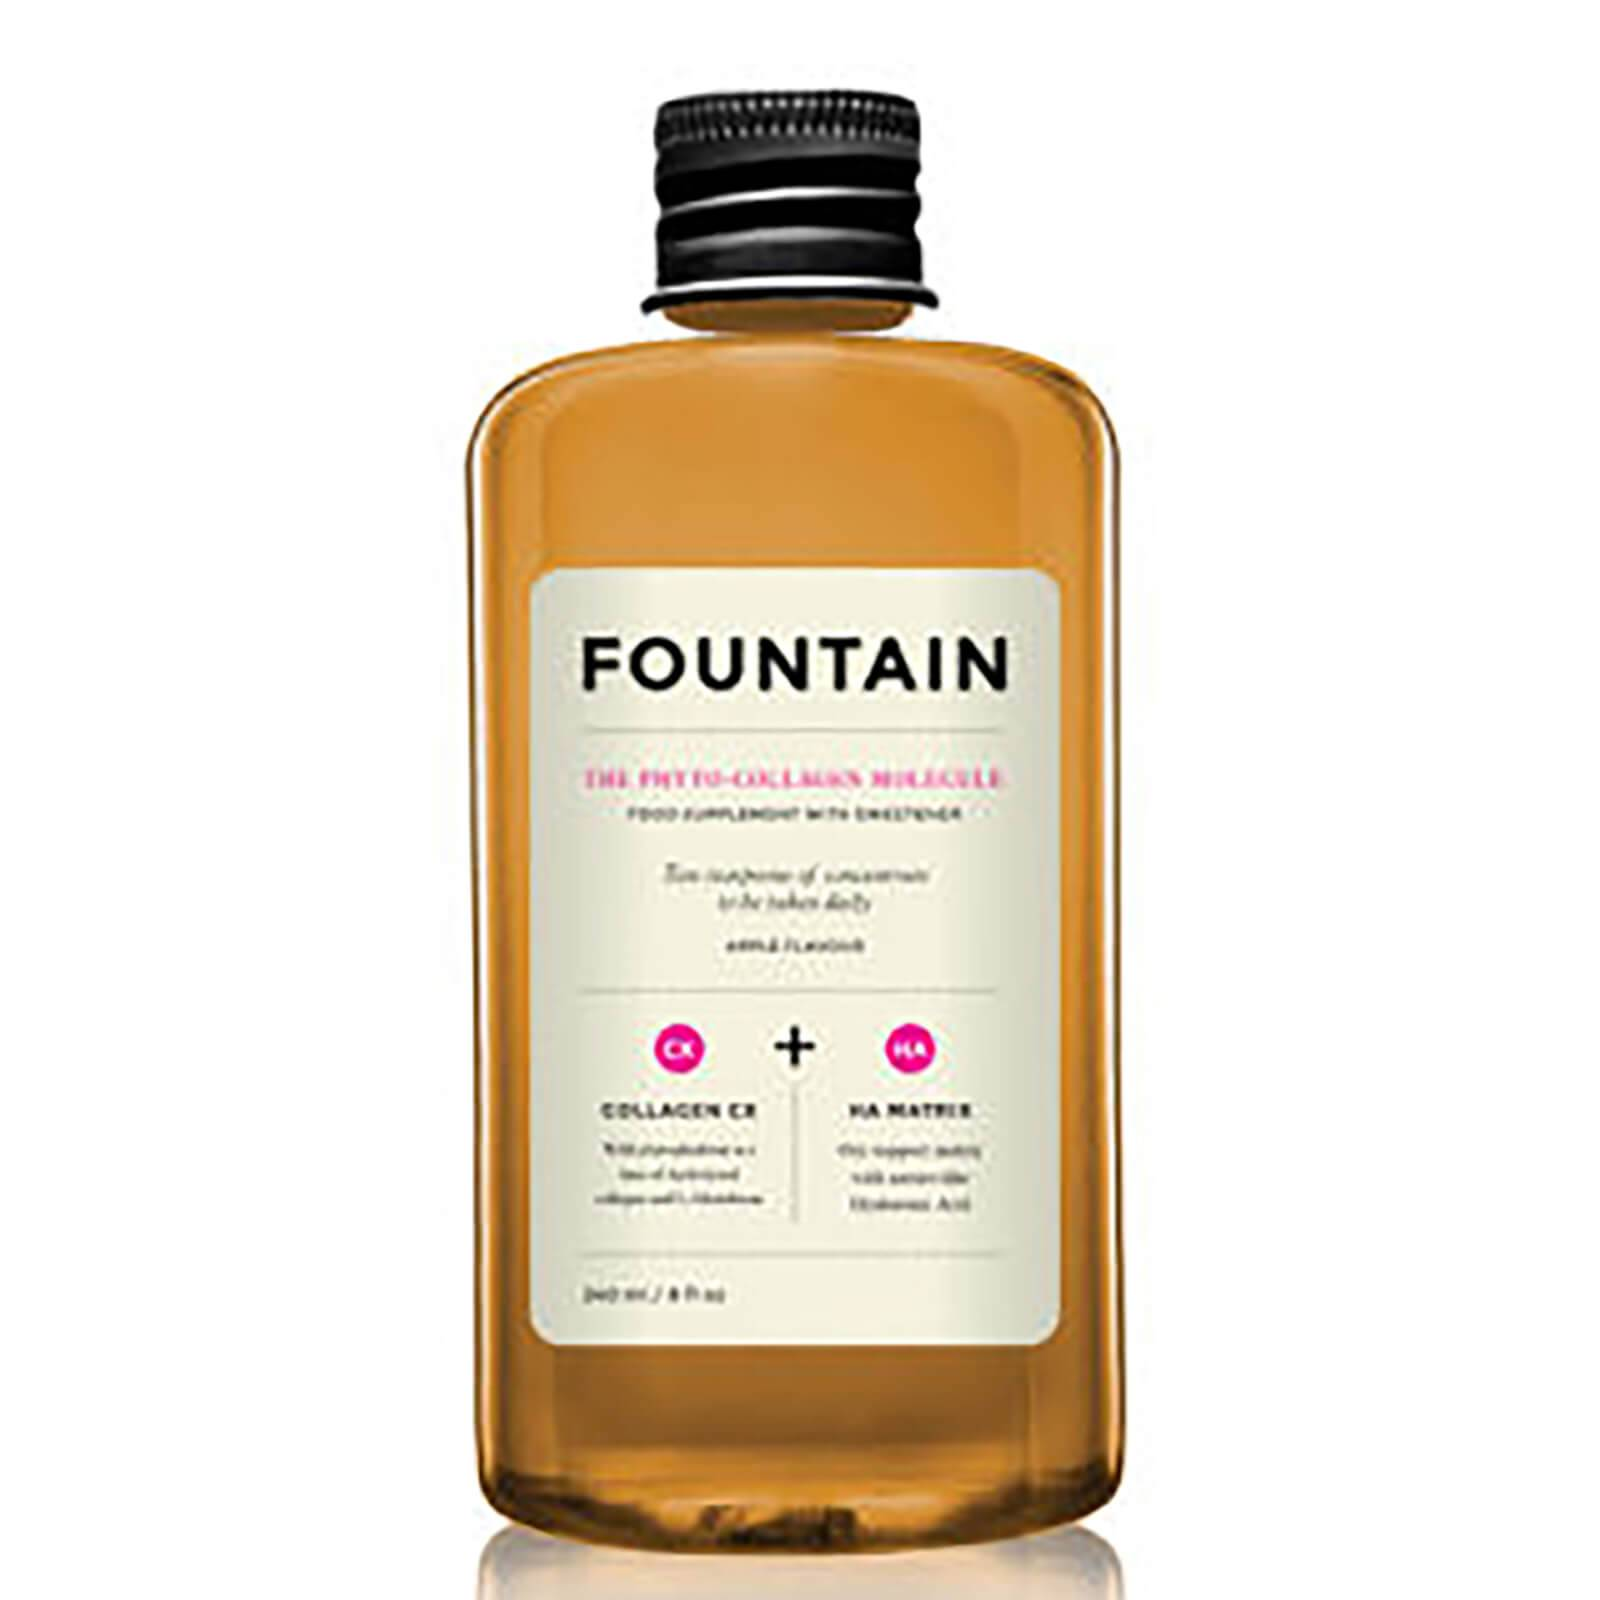 Fountain FONTANA Il Phyto Collagene Molecola (240ml)